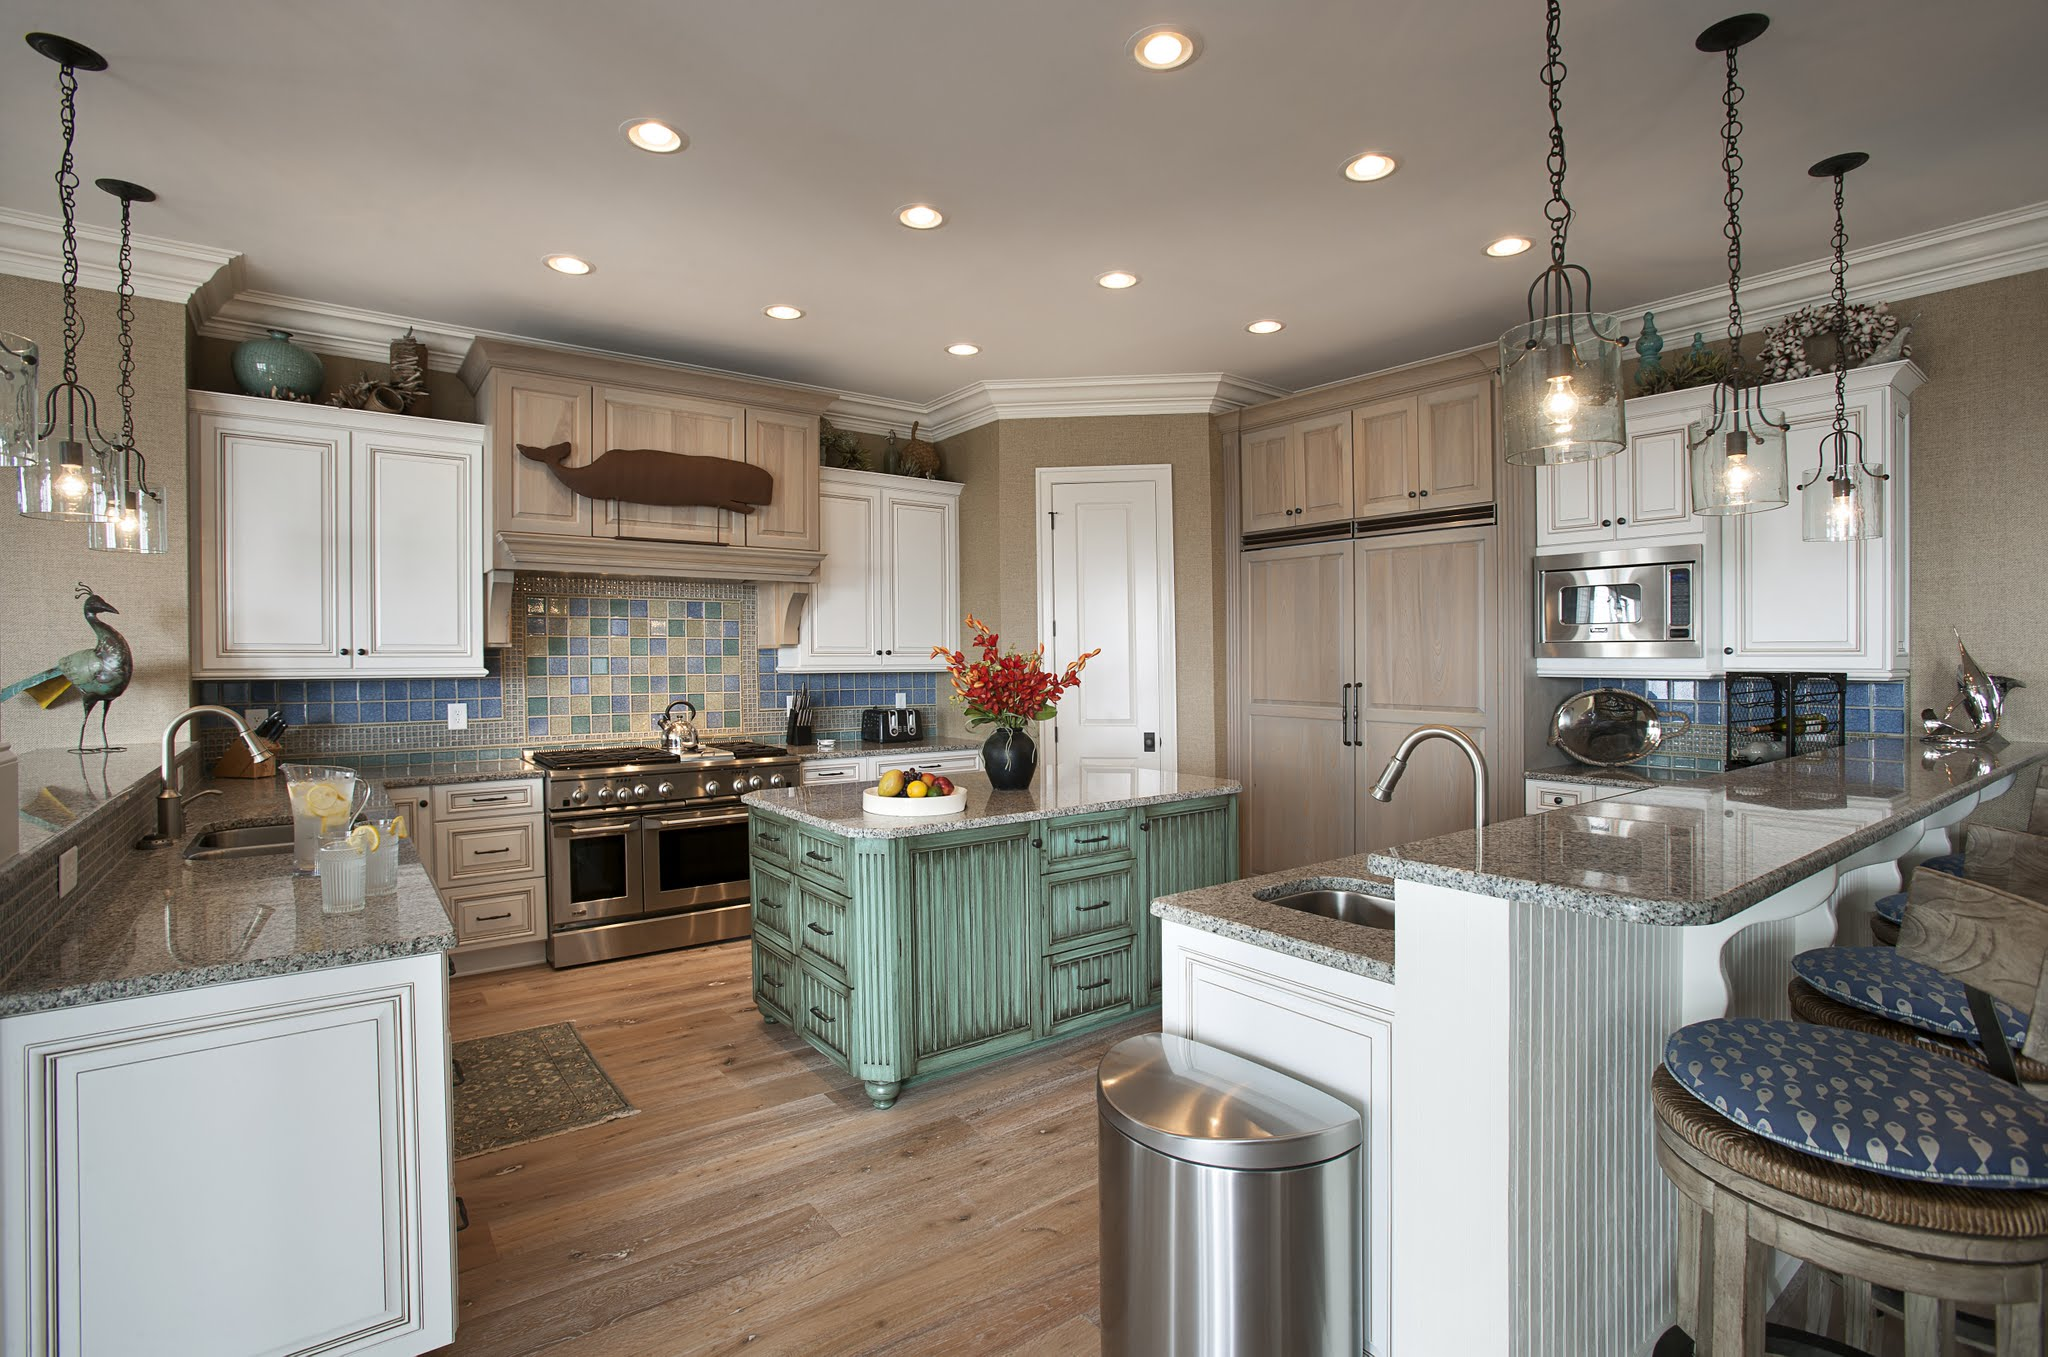 Beach Style Kitchen Cabinets 5 Things Every Kitchen Design Needs To Appeal To The Home